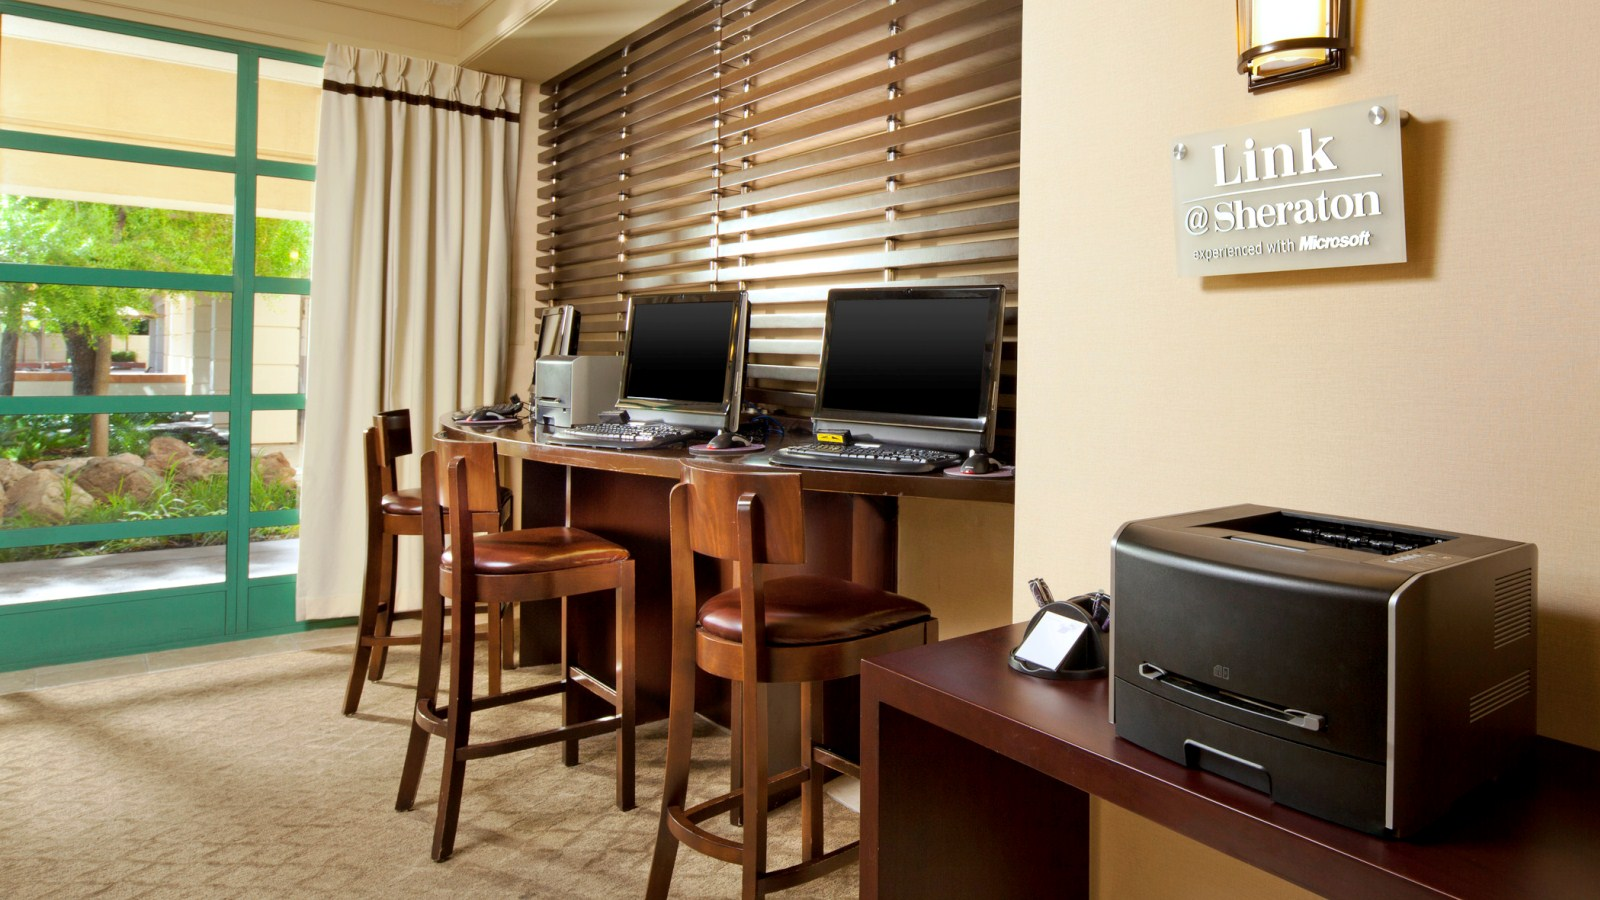 Features and Amenities - The Link@Sheraton